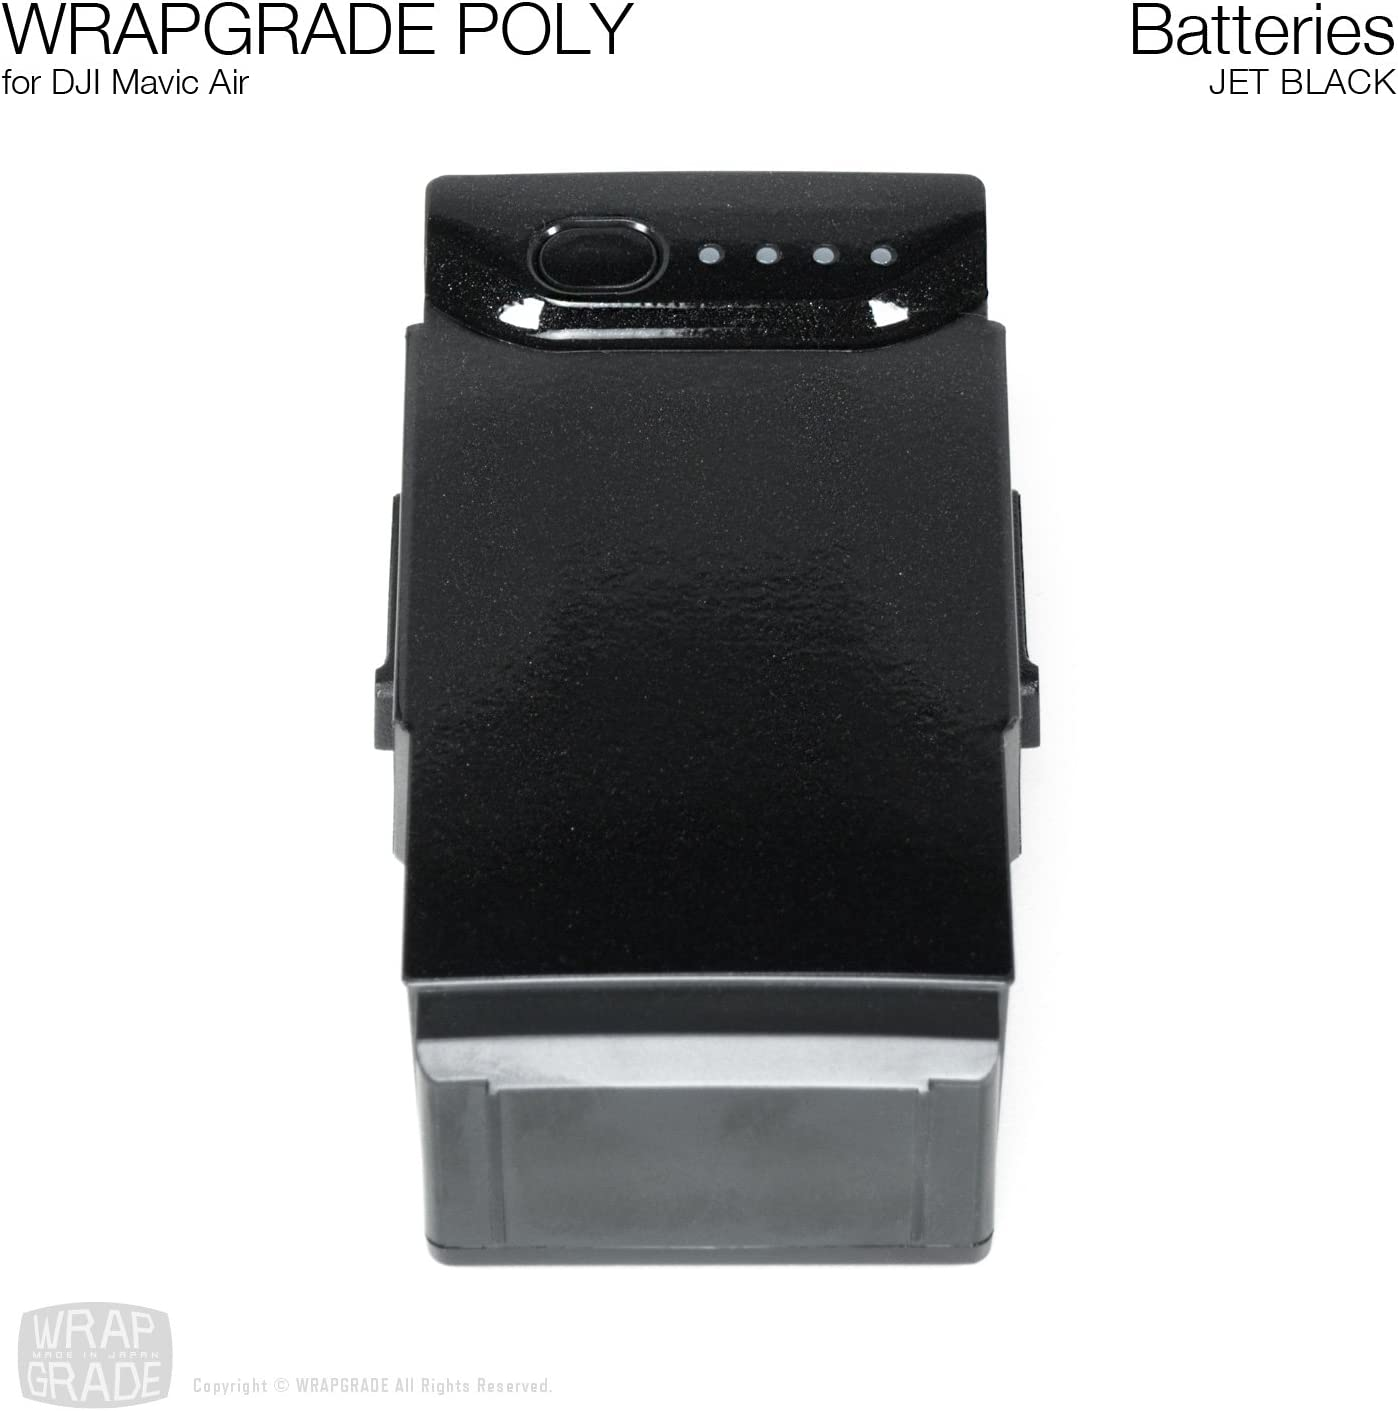 Racing White 3 Batteries WRAPGRADE Poly Skin Compatible with DJI Mavic Air